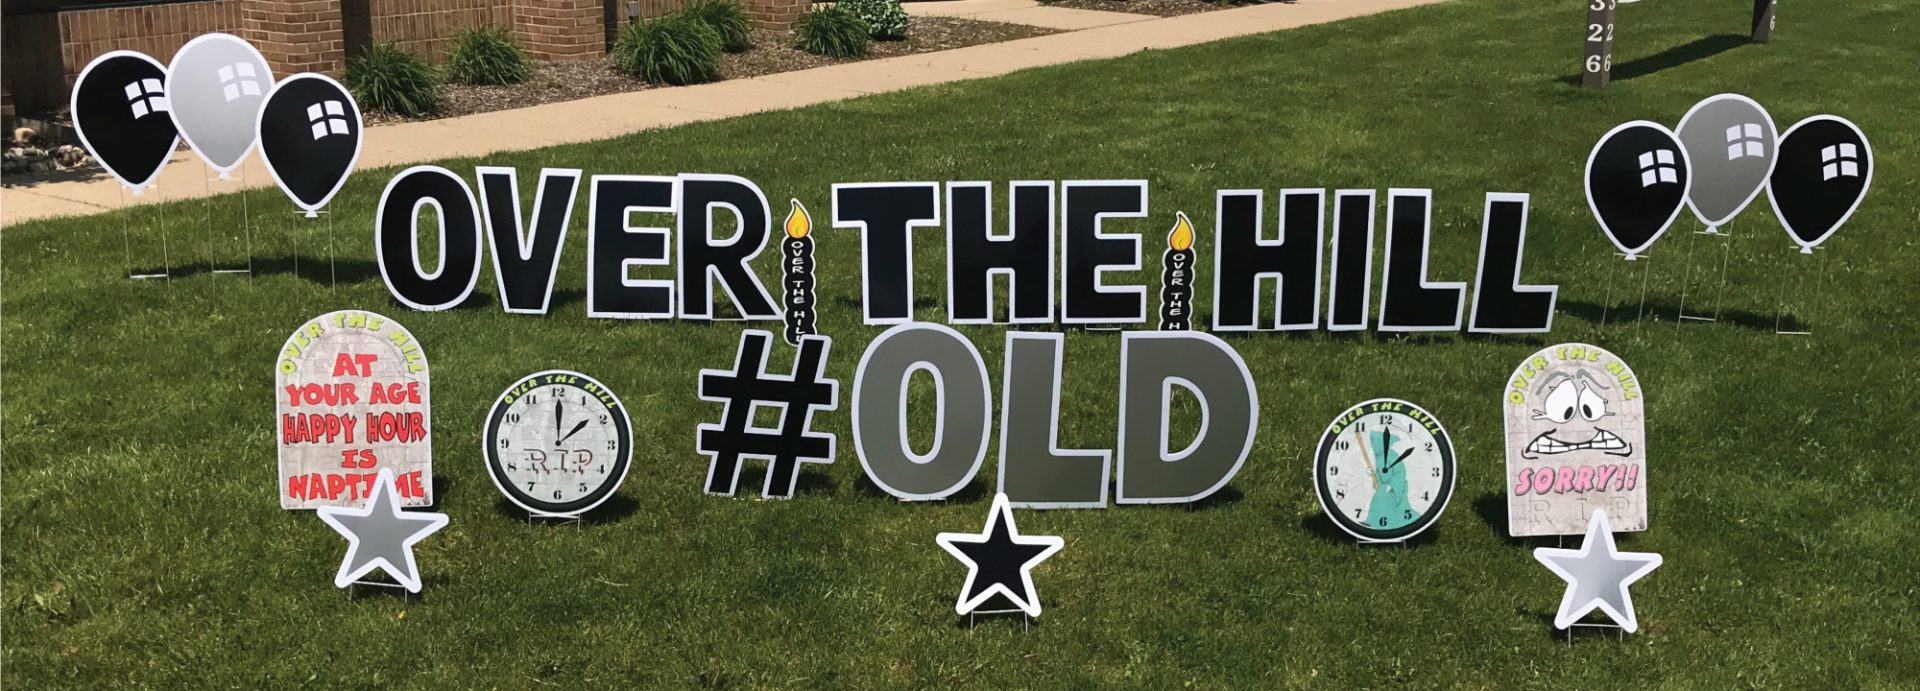 Slider_Over_the_hill_#old_tombstones_clocks_stars_yard_greetings_lawn_signs_yard_cards_1